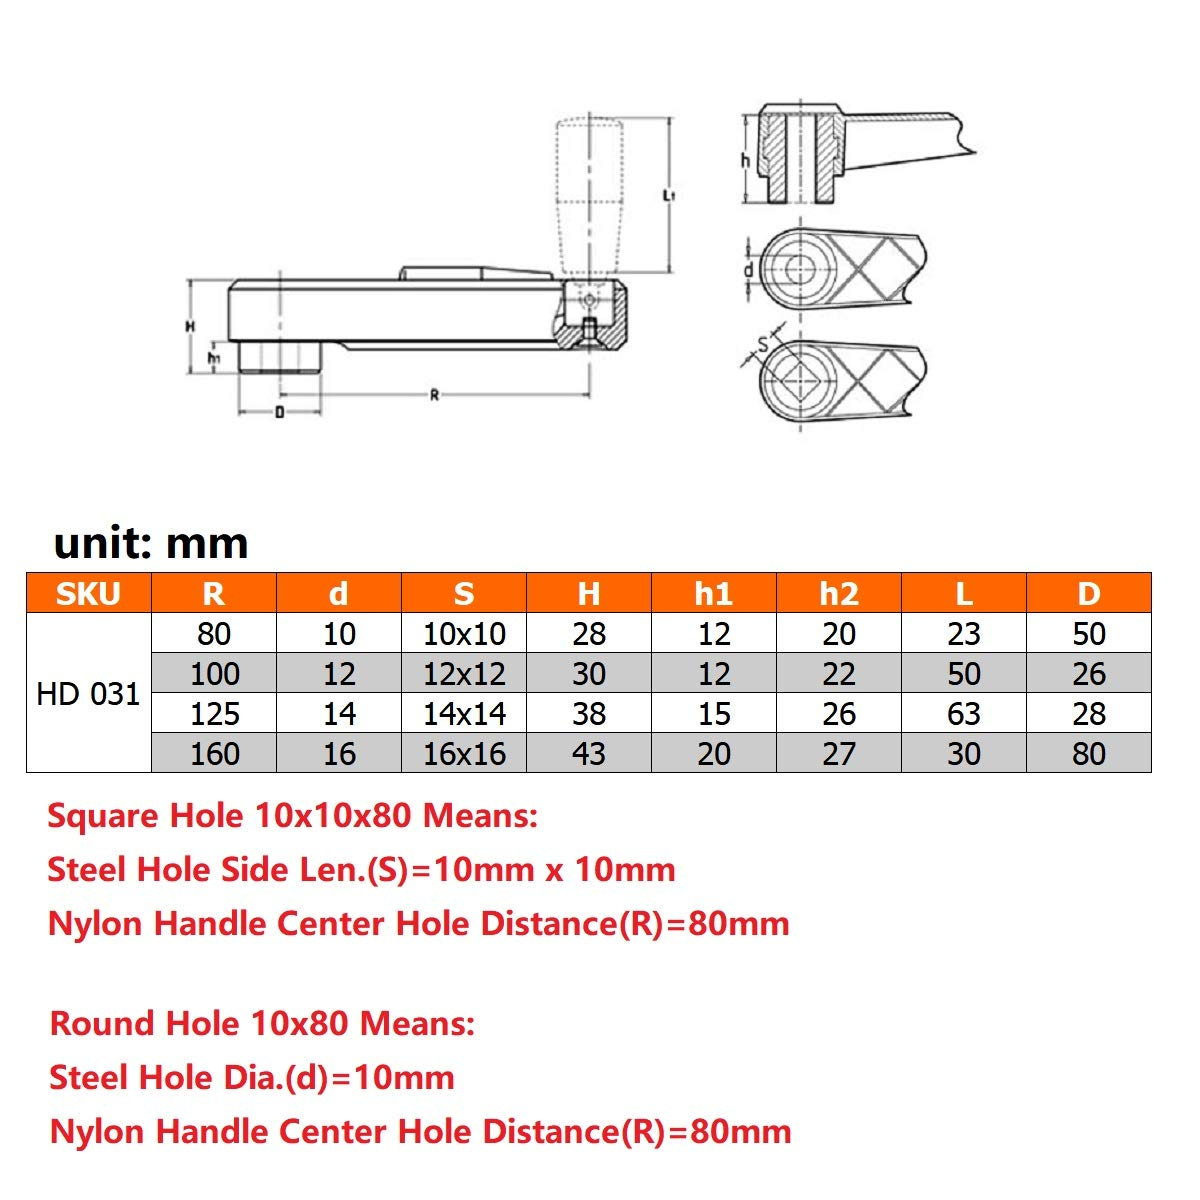 Square Hole 10x10x80 Nylon Hidden Folding Crank Handle with a Round or Square Installation Hole and a Foldable Revolving Handle 2pcs